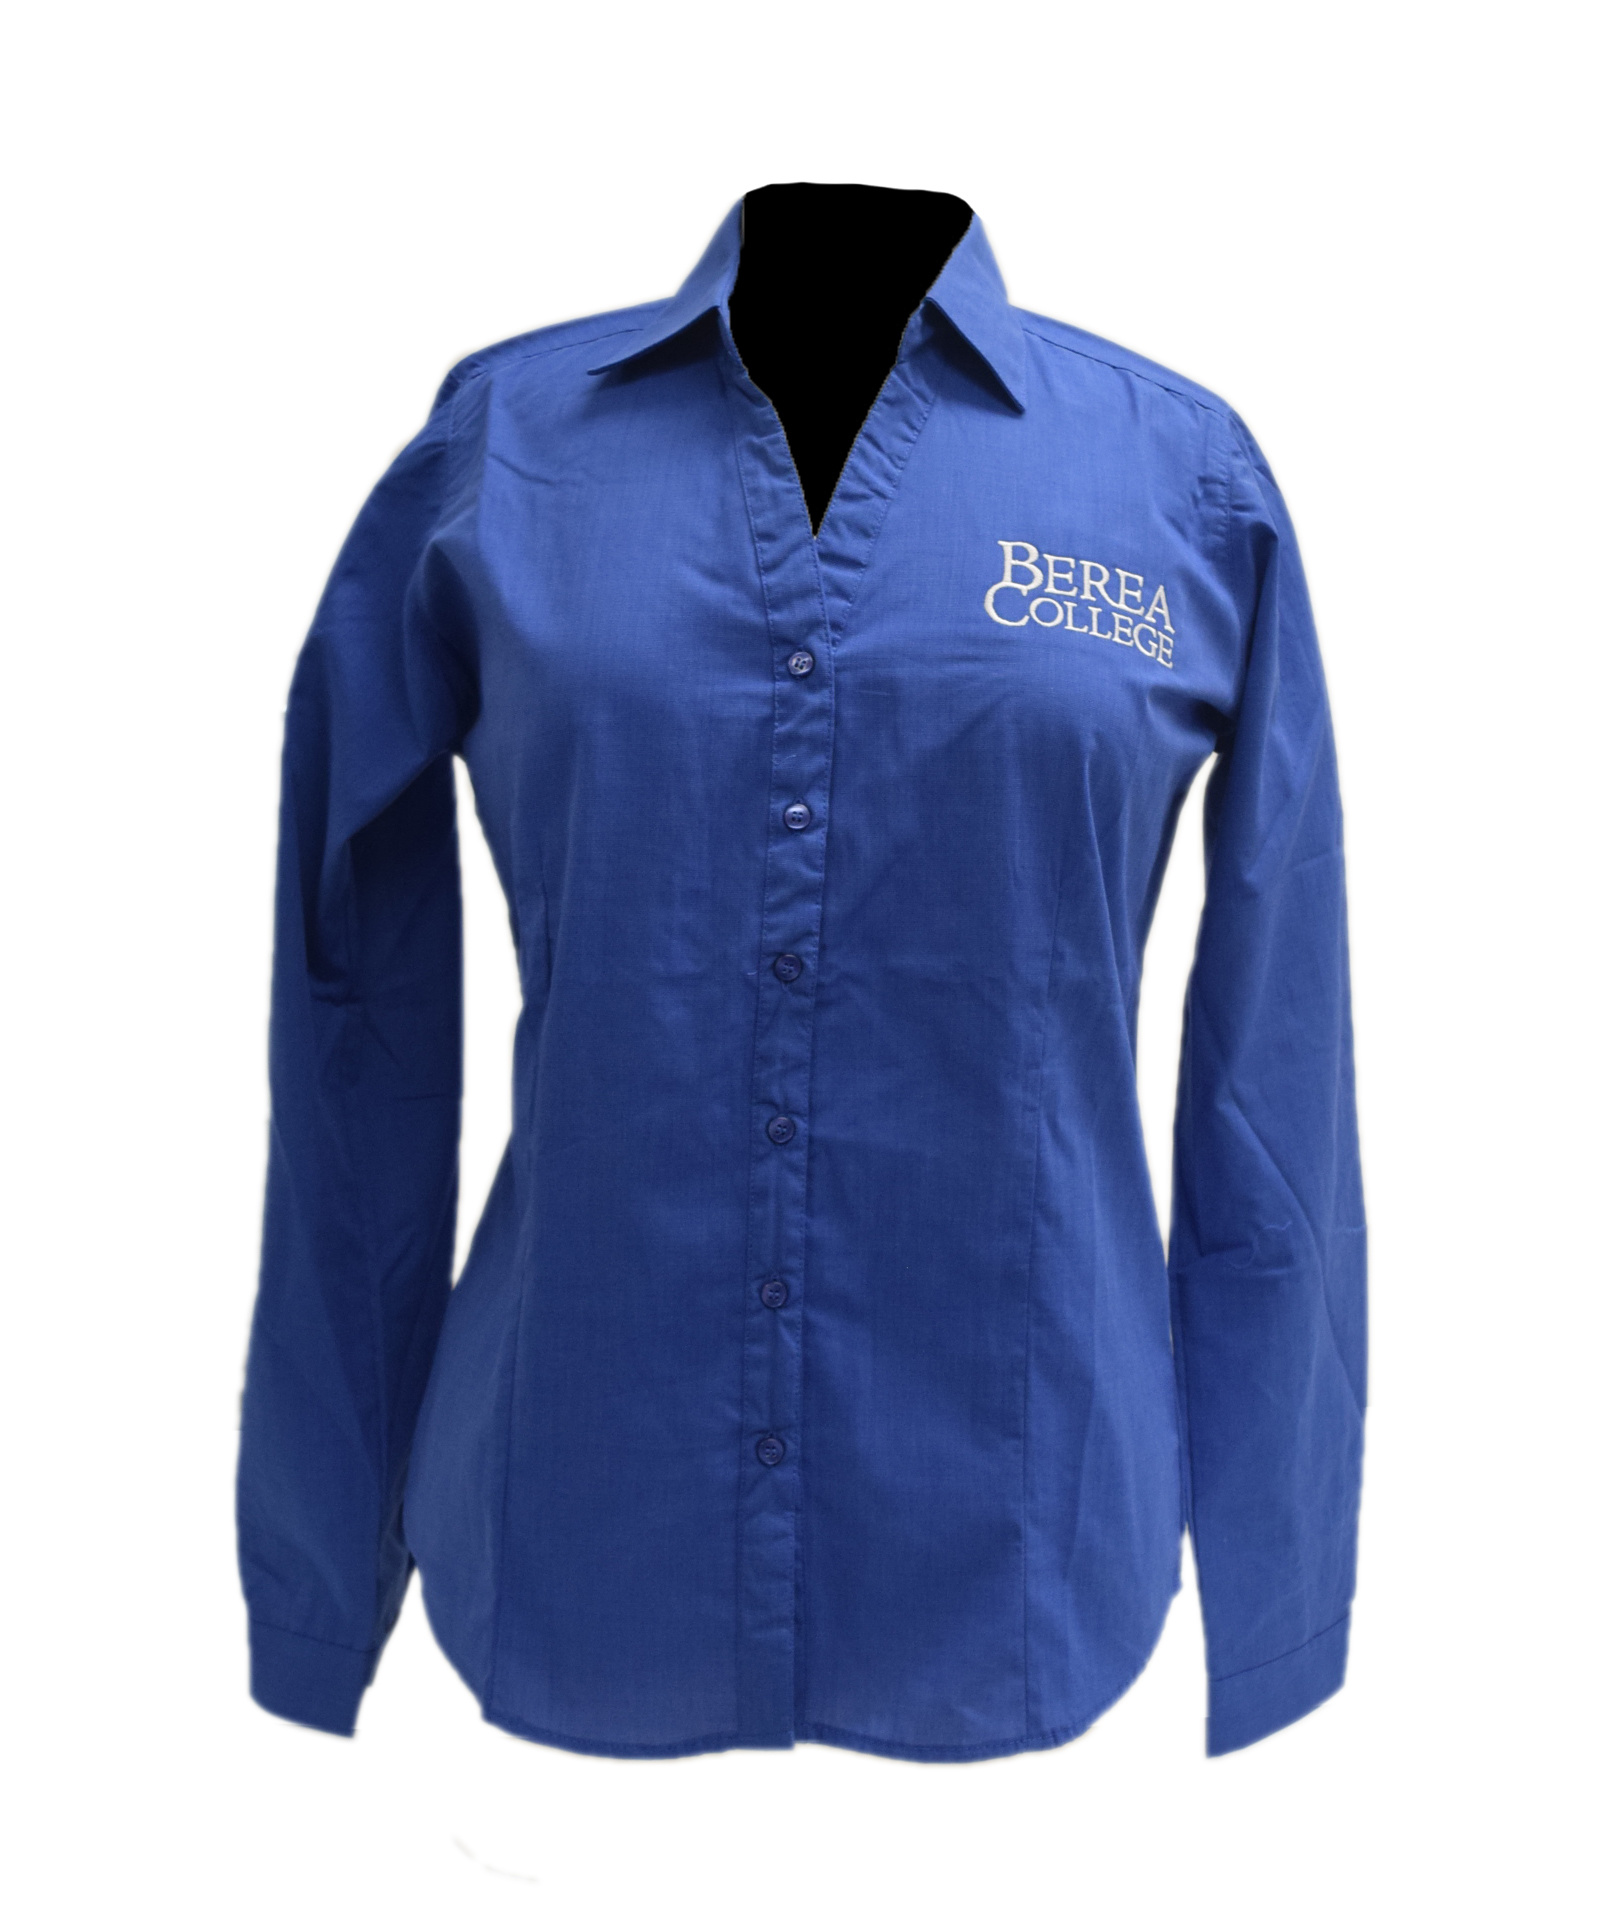 French Blue Berea College Dress Shirt-1